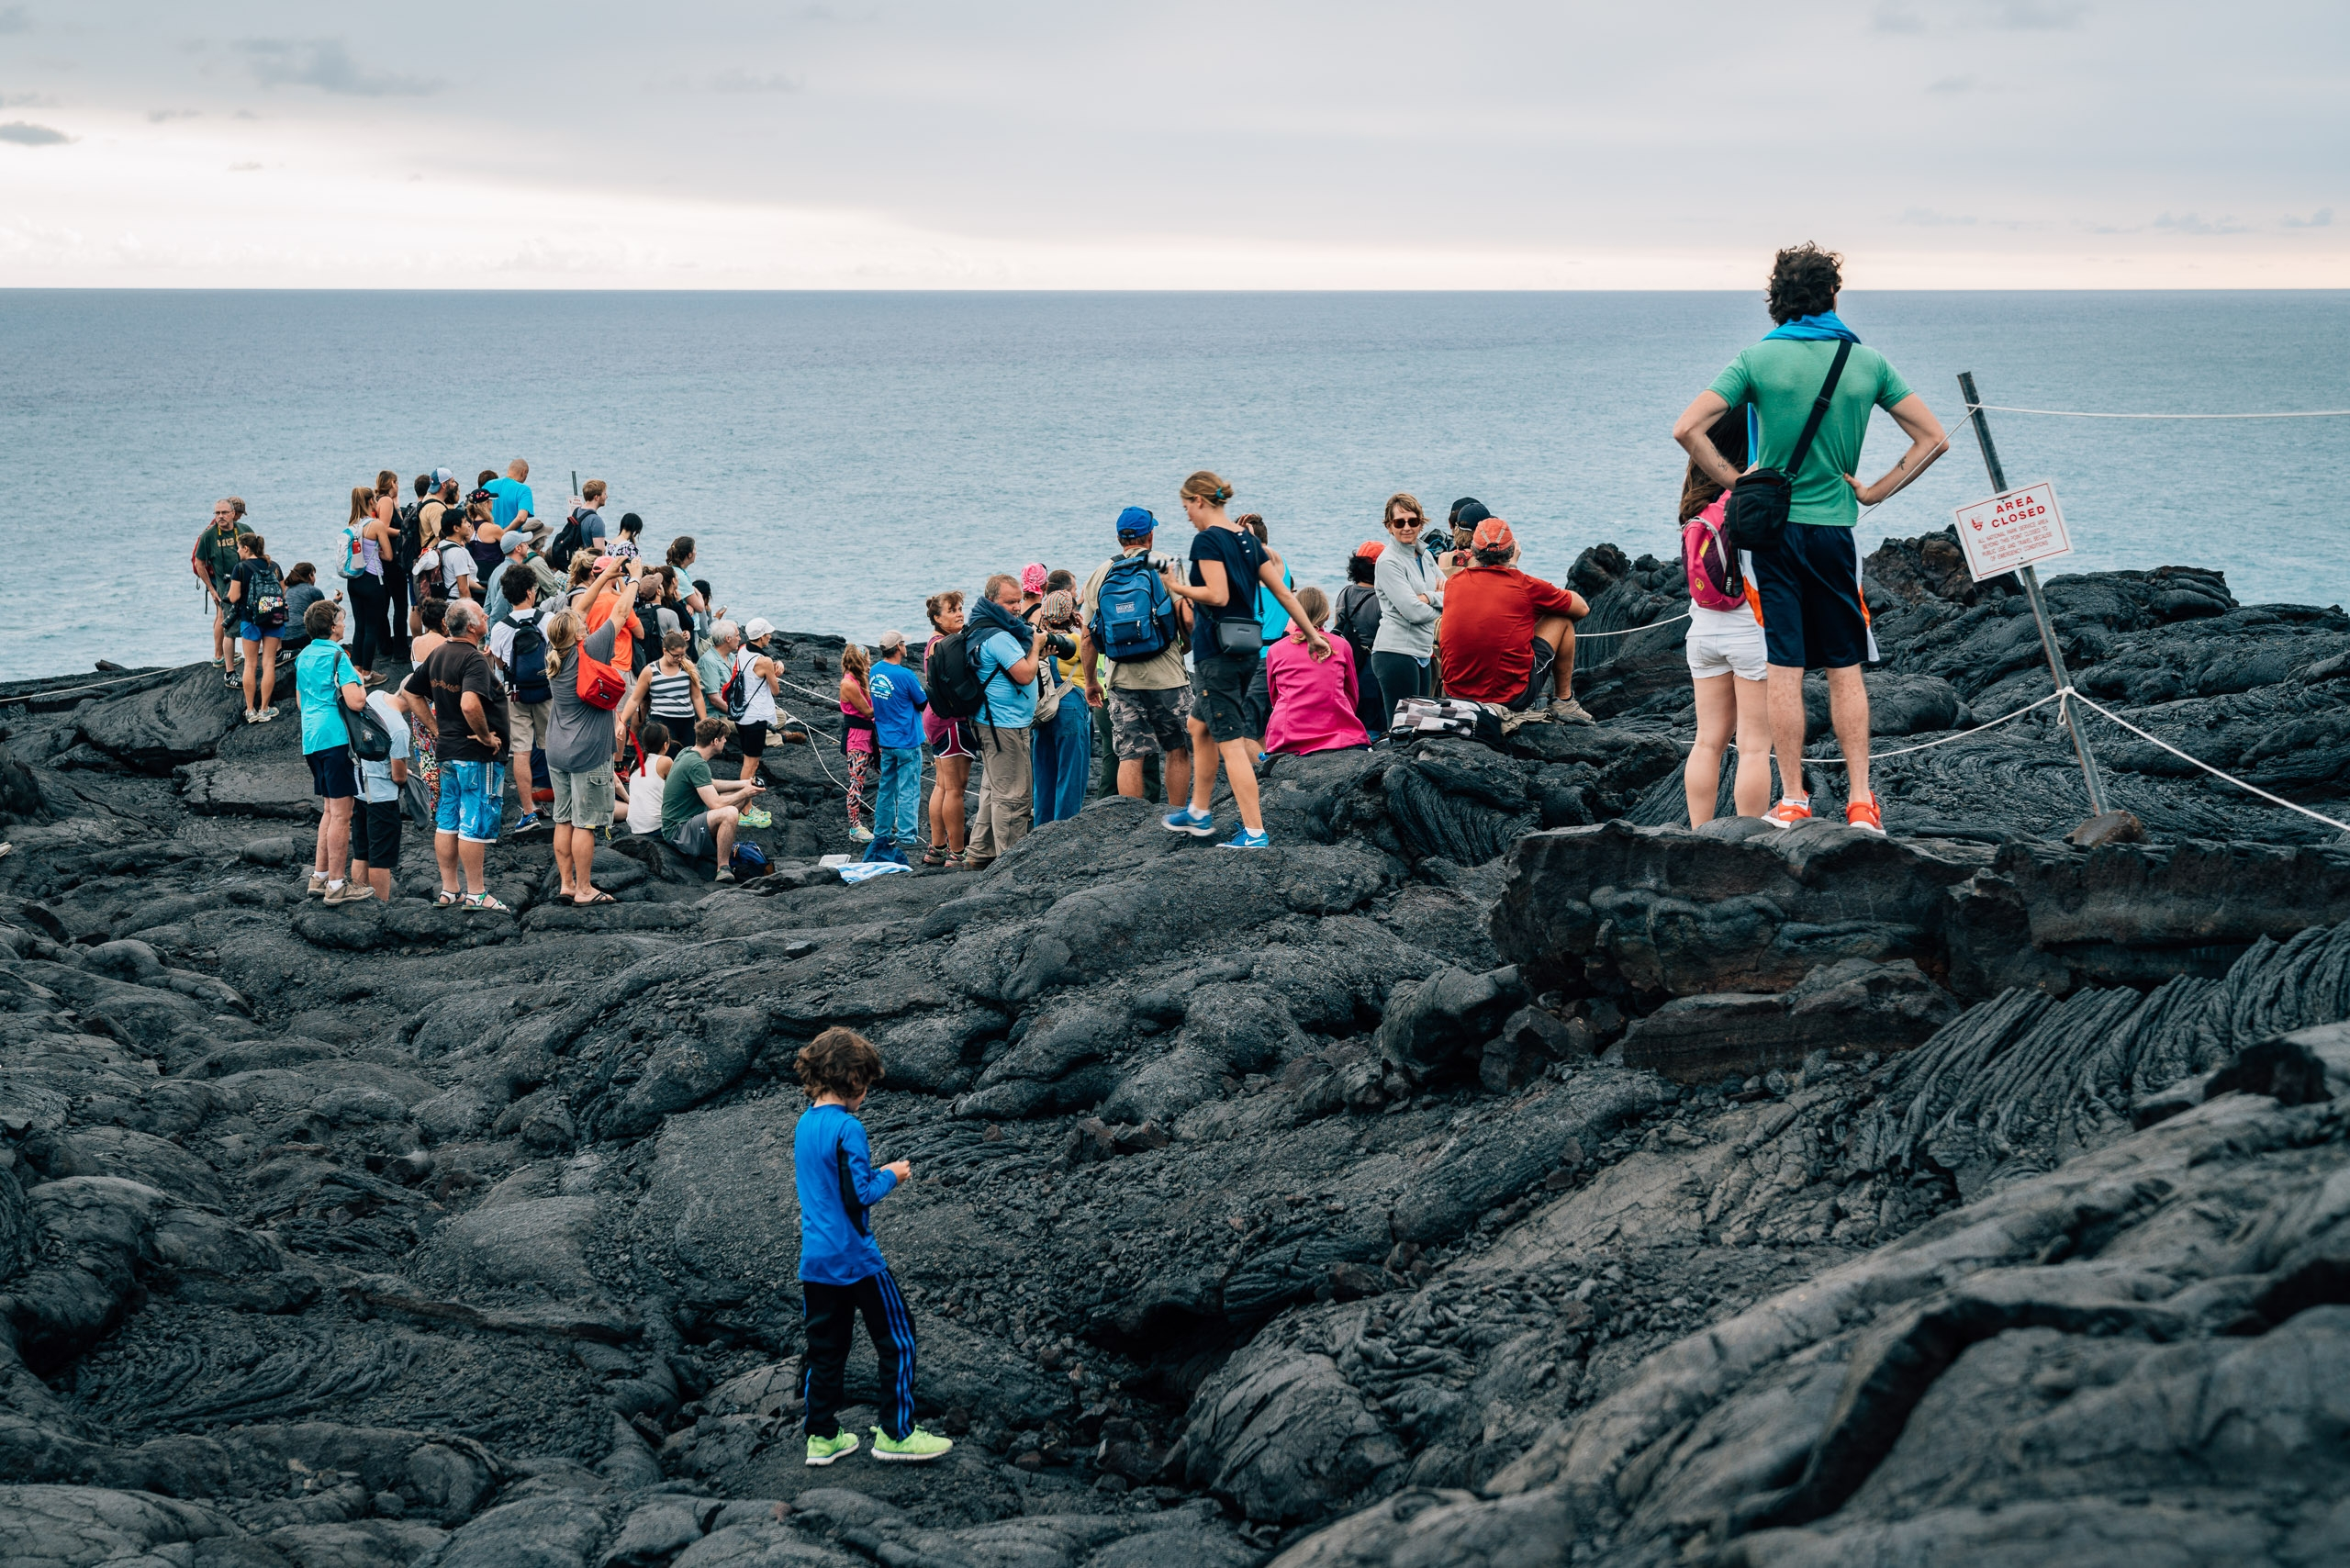 Crowds Gather for Volcano Watching